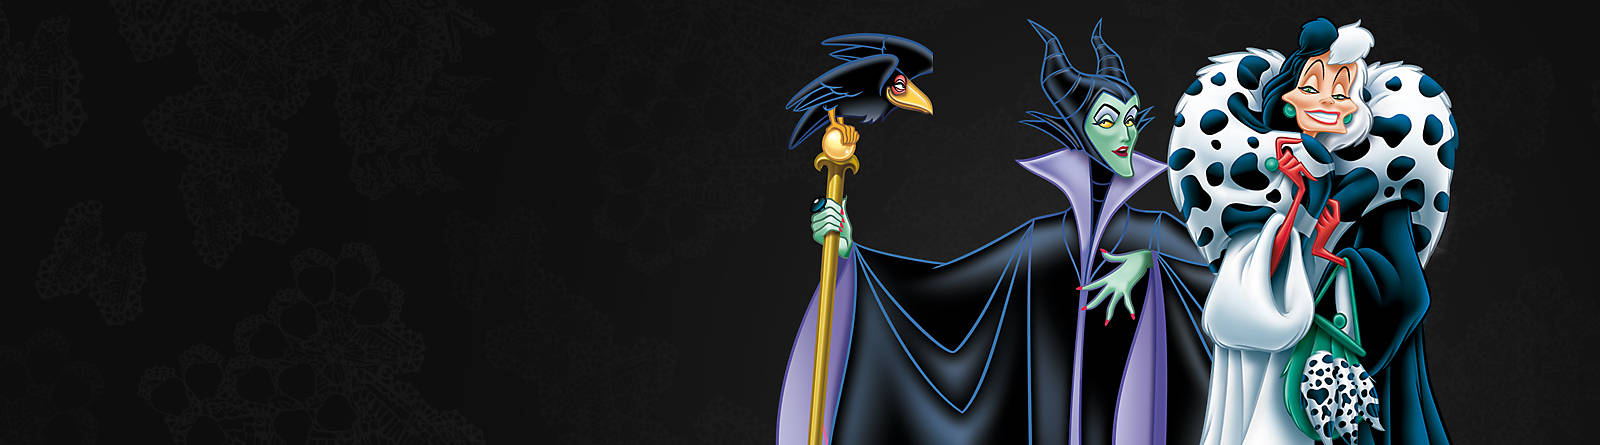 Disney Villains Revel in an array of evil merchandise with products from the Evil Queen, Maleficent and Ursula